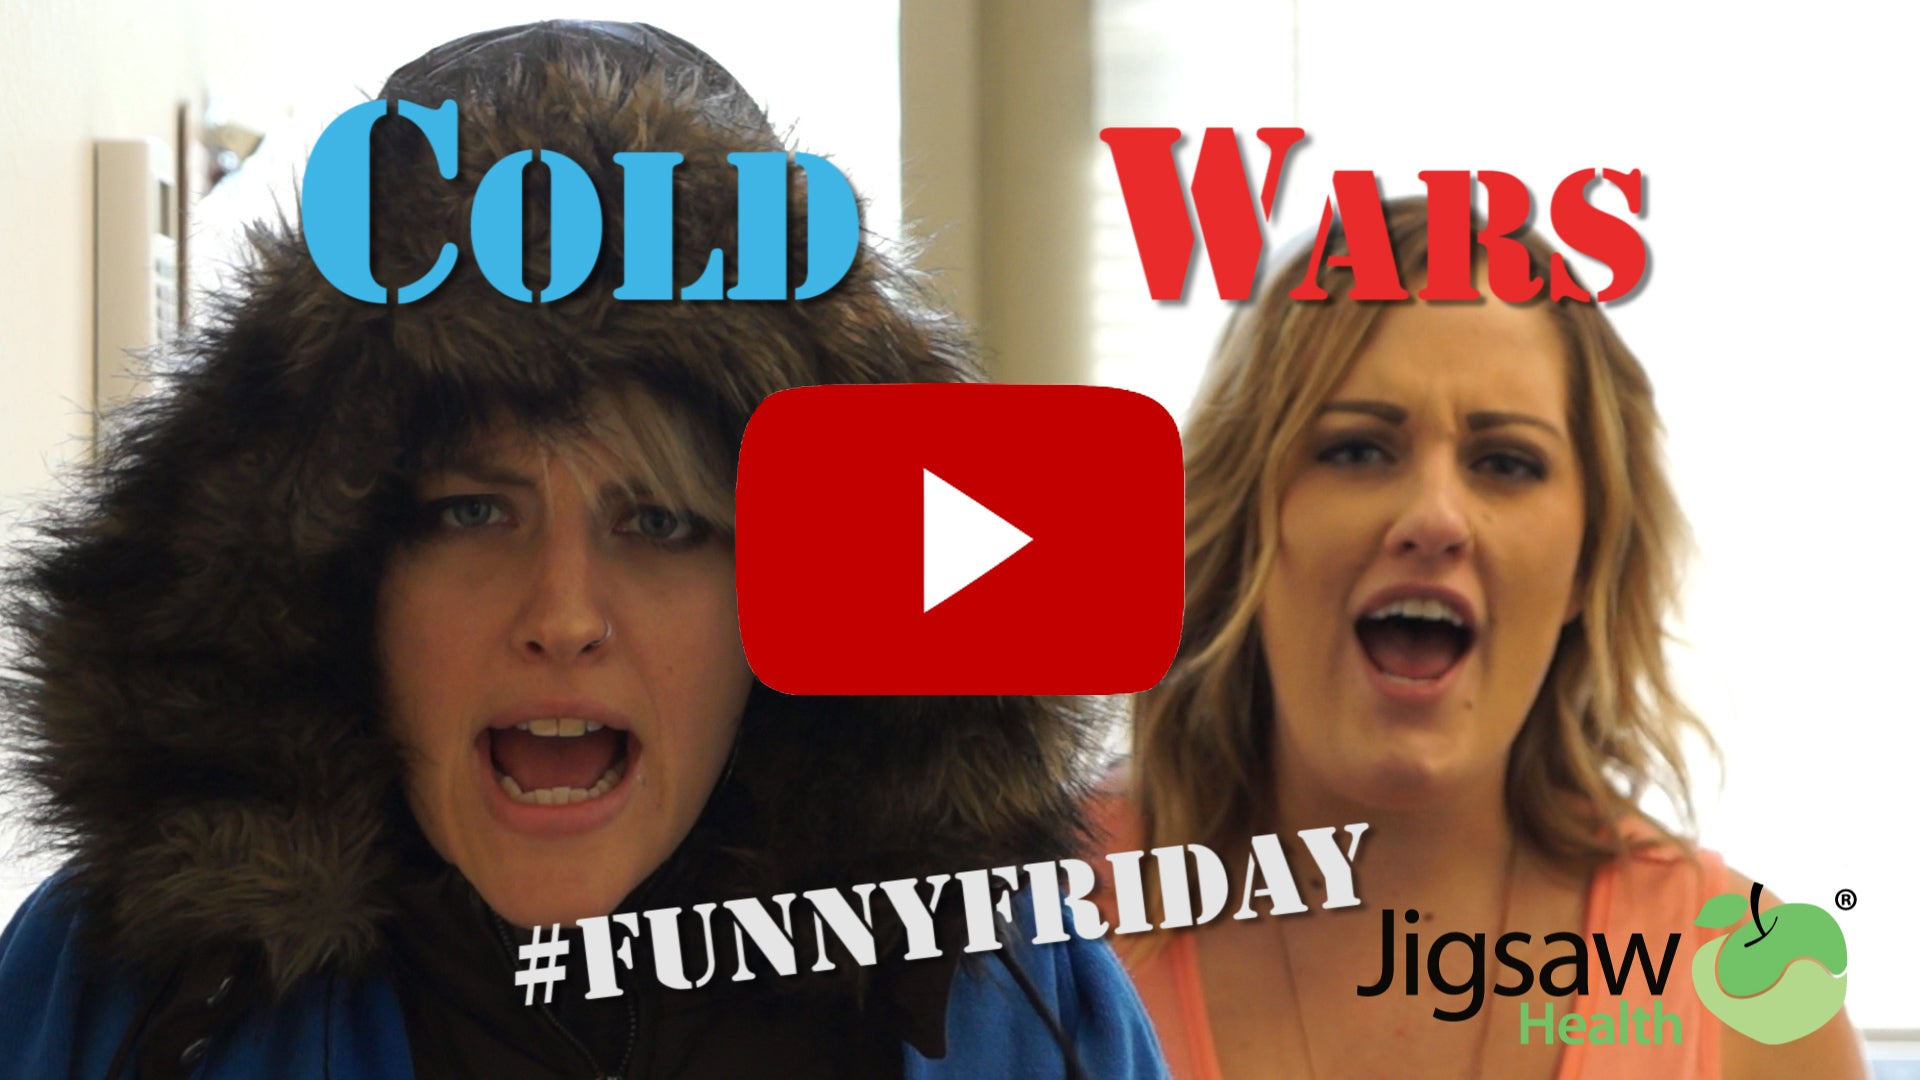 Cold Wars #funnyfriday